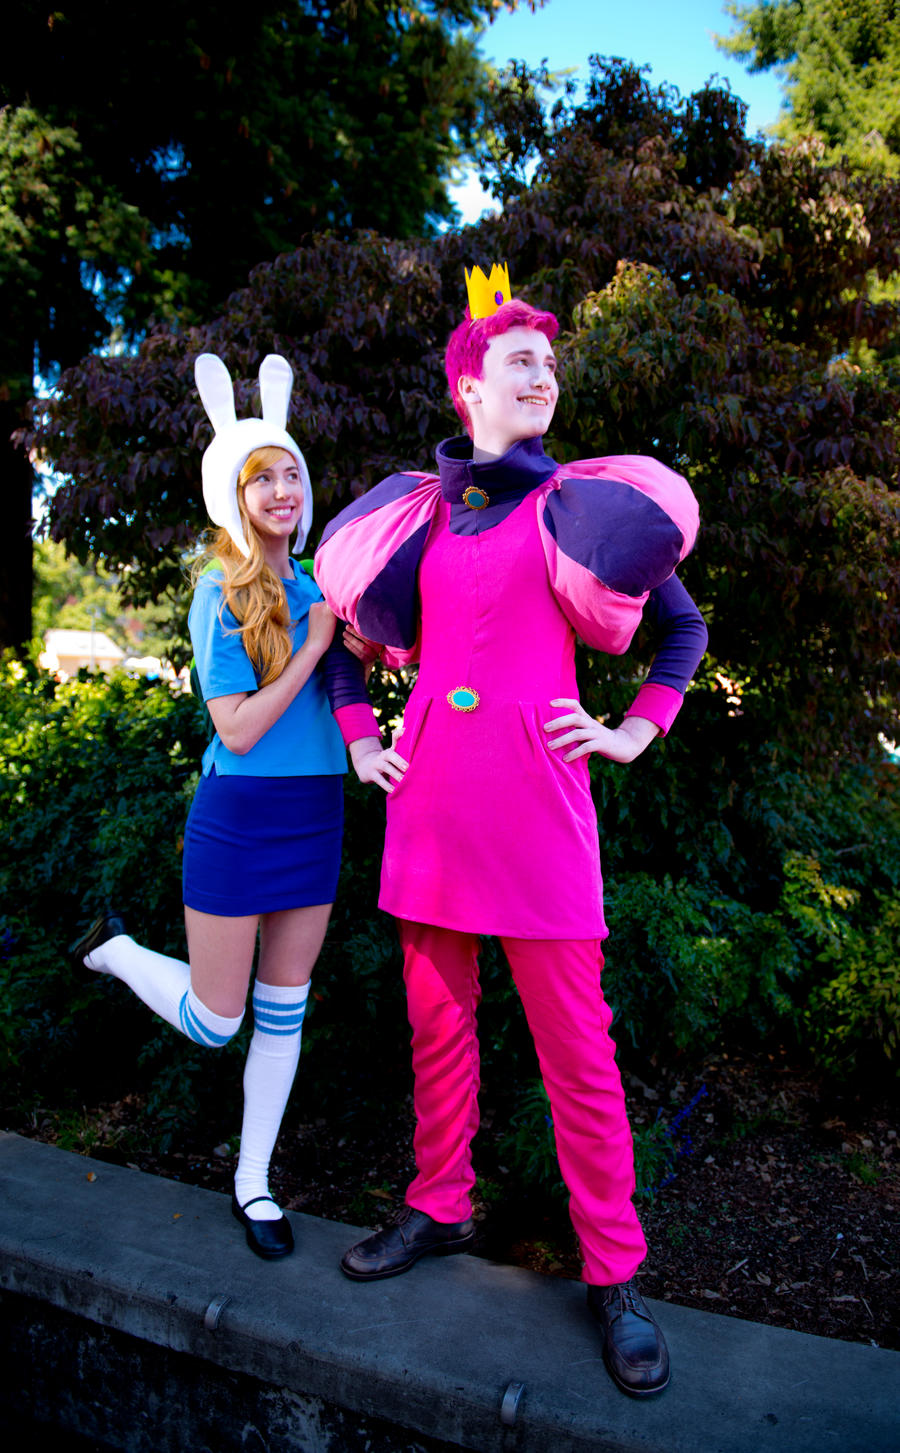 Prince Gumball And Fionna By Elitecosplay On Deviantart